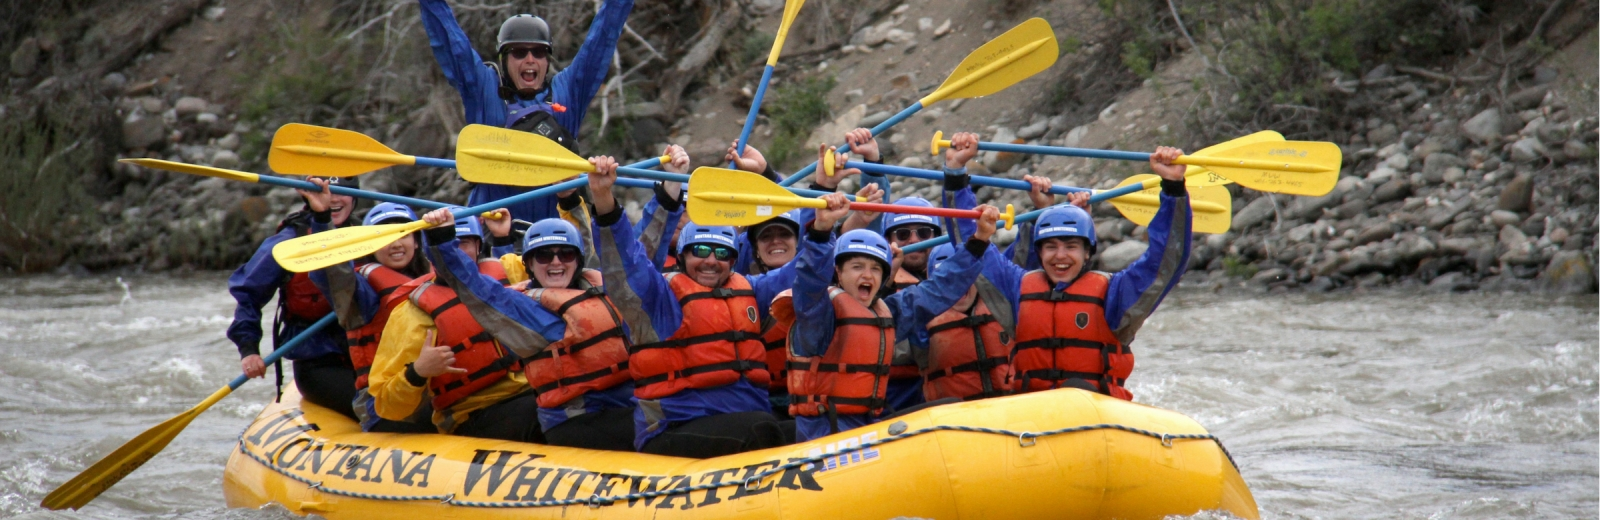 Montana Whitewater Rafting and ZipLine Co